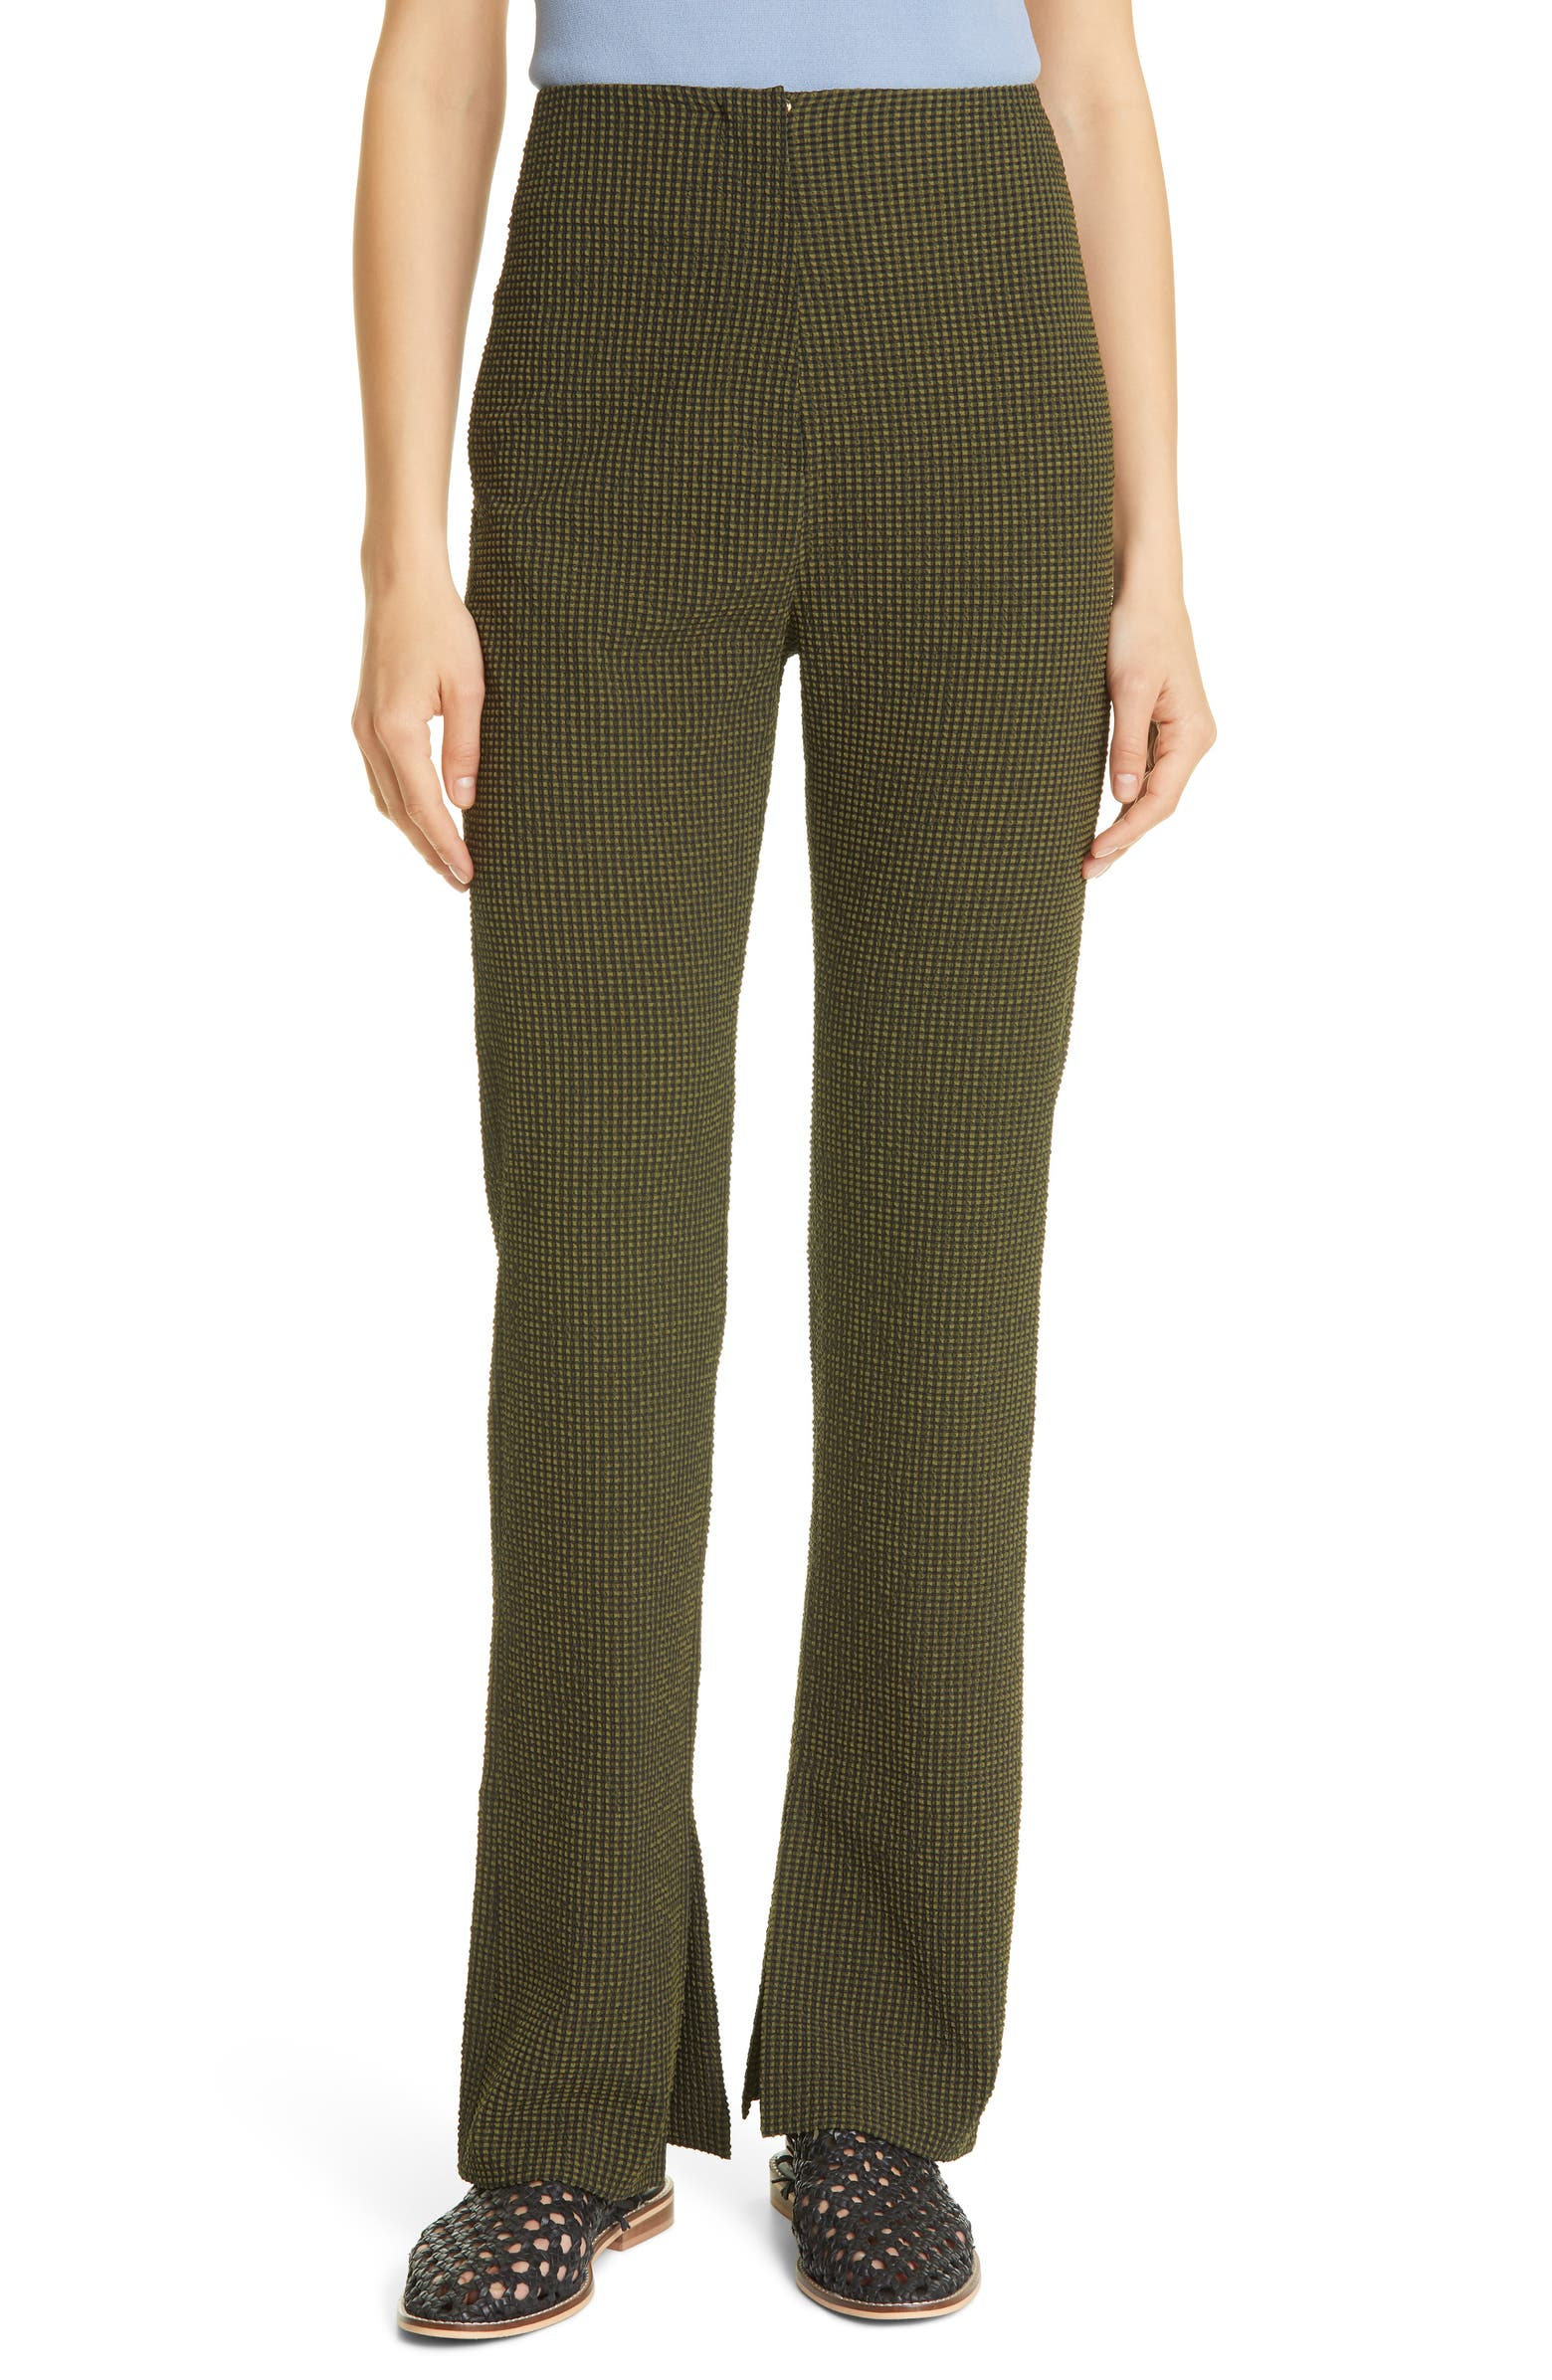 Tabbie Check Trousers by NANUSHKA, available on nordstrom.ca Selena Gomez Pants Exact Product